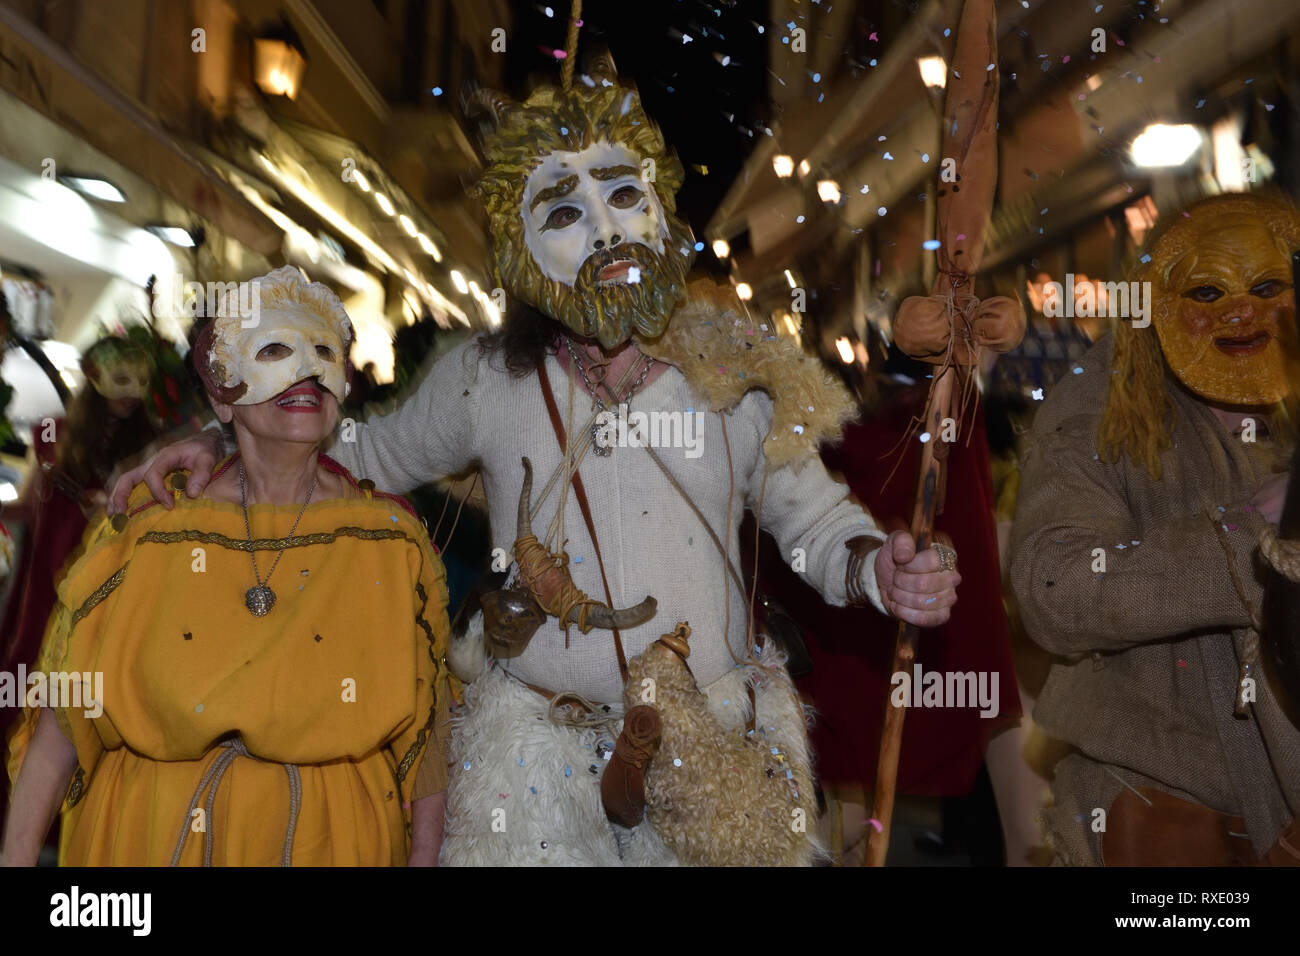 Athens, Greece. 9th Mar 2019. Participants march through the historic center of Athens to celebrate the ancient Greek festival phalliphoria honoring the god of wine, fertility and theater Dionysus in Athens, Greece. Credit: Nicolas Koutsokostas/Alamy Live News. - Stock Image